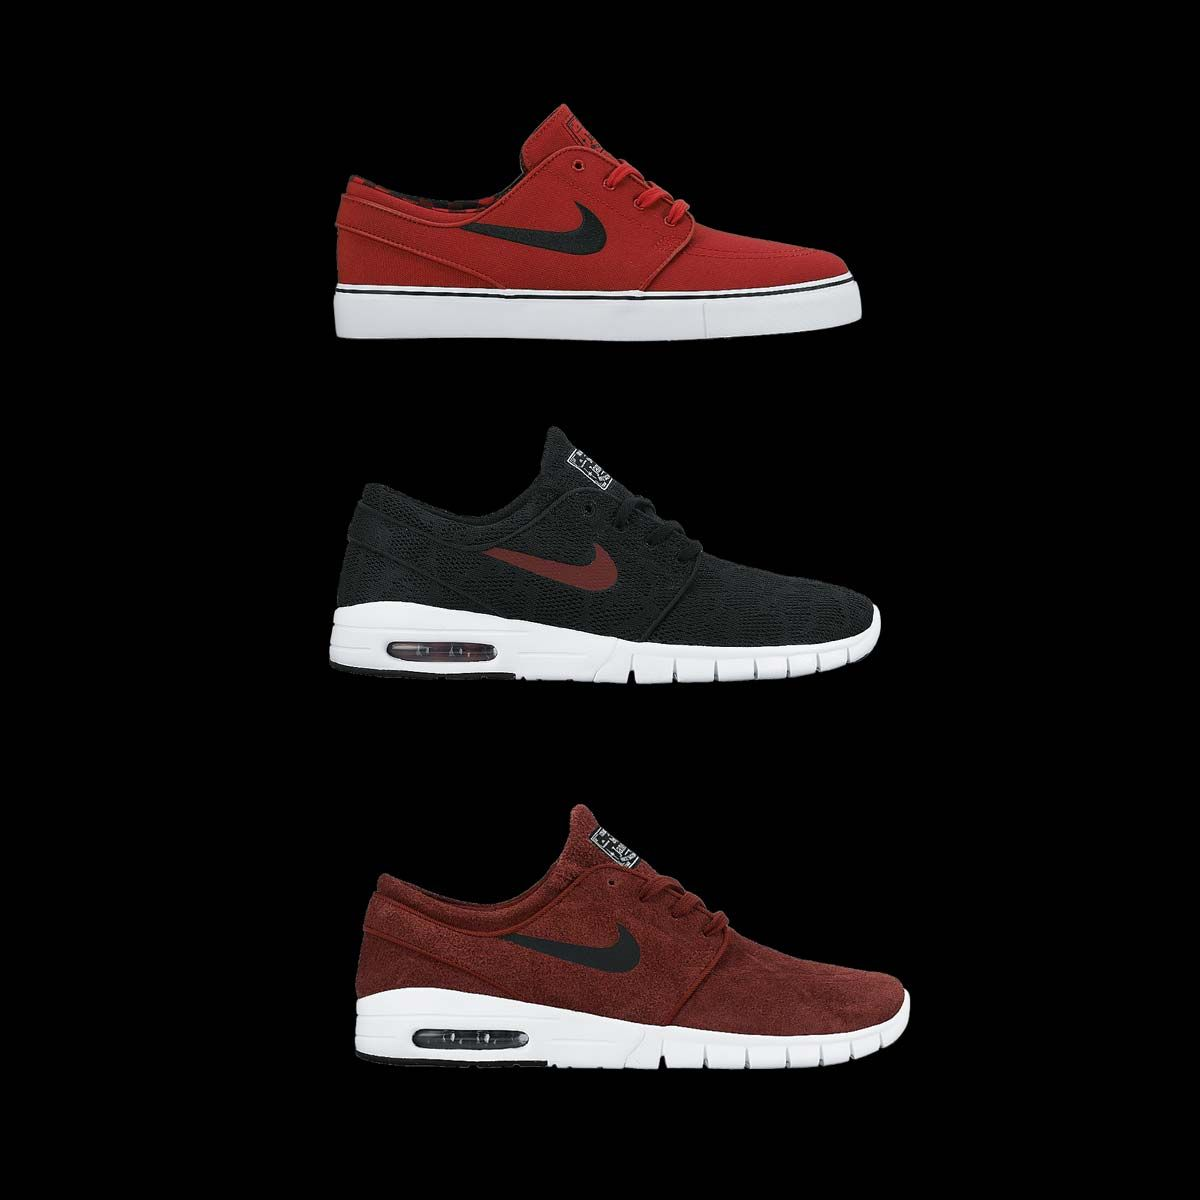 Red alert! We ve got new colors of the Nike Zoom Stefan Janoski + Stefan  Janoski Max. Grab  em while they re hot. b1accd34ad45